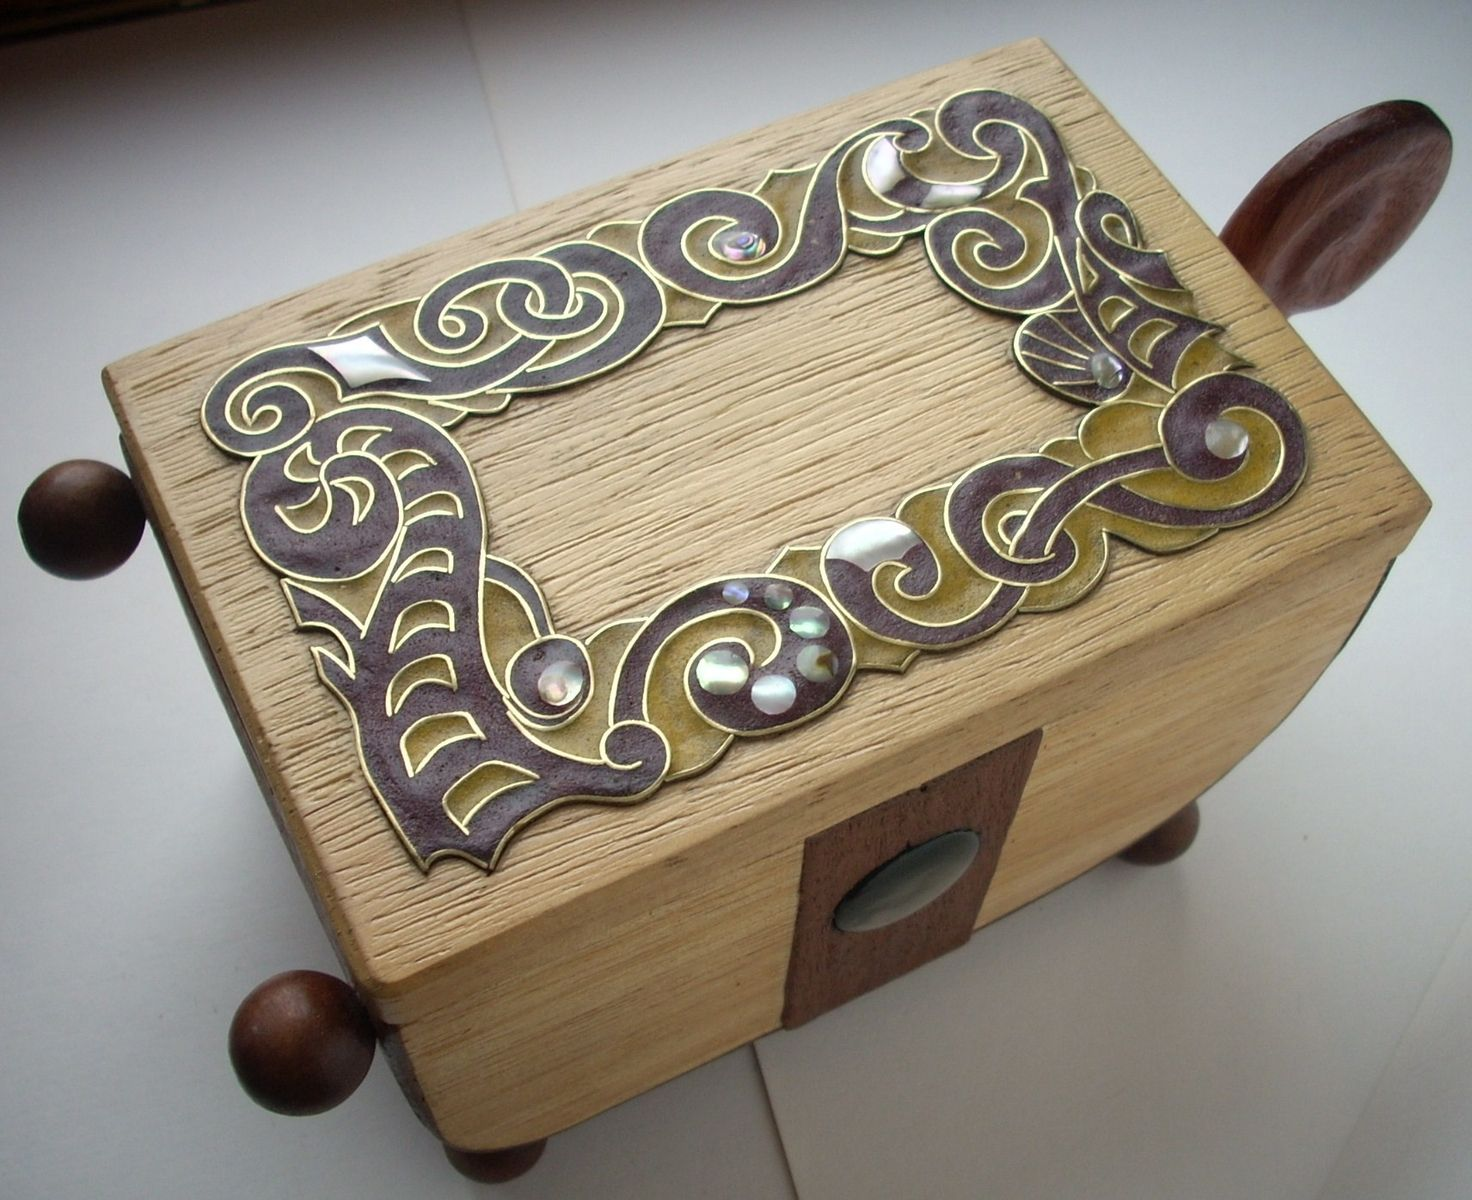 Hand made wooden inlaid jewelry box by wire inlay studio for Jewelry box made of wood